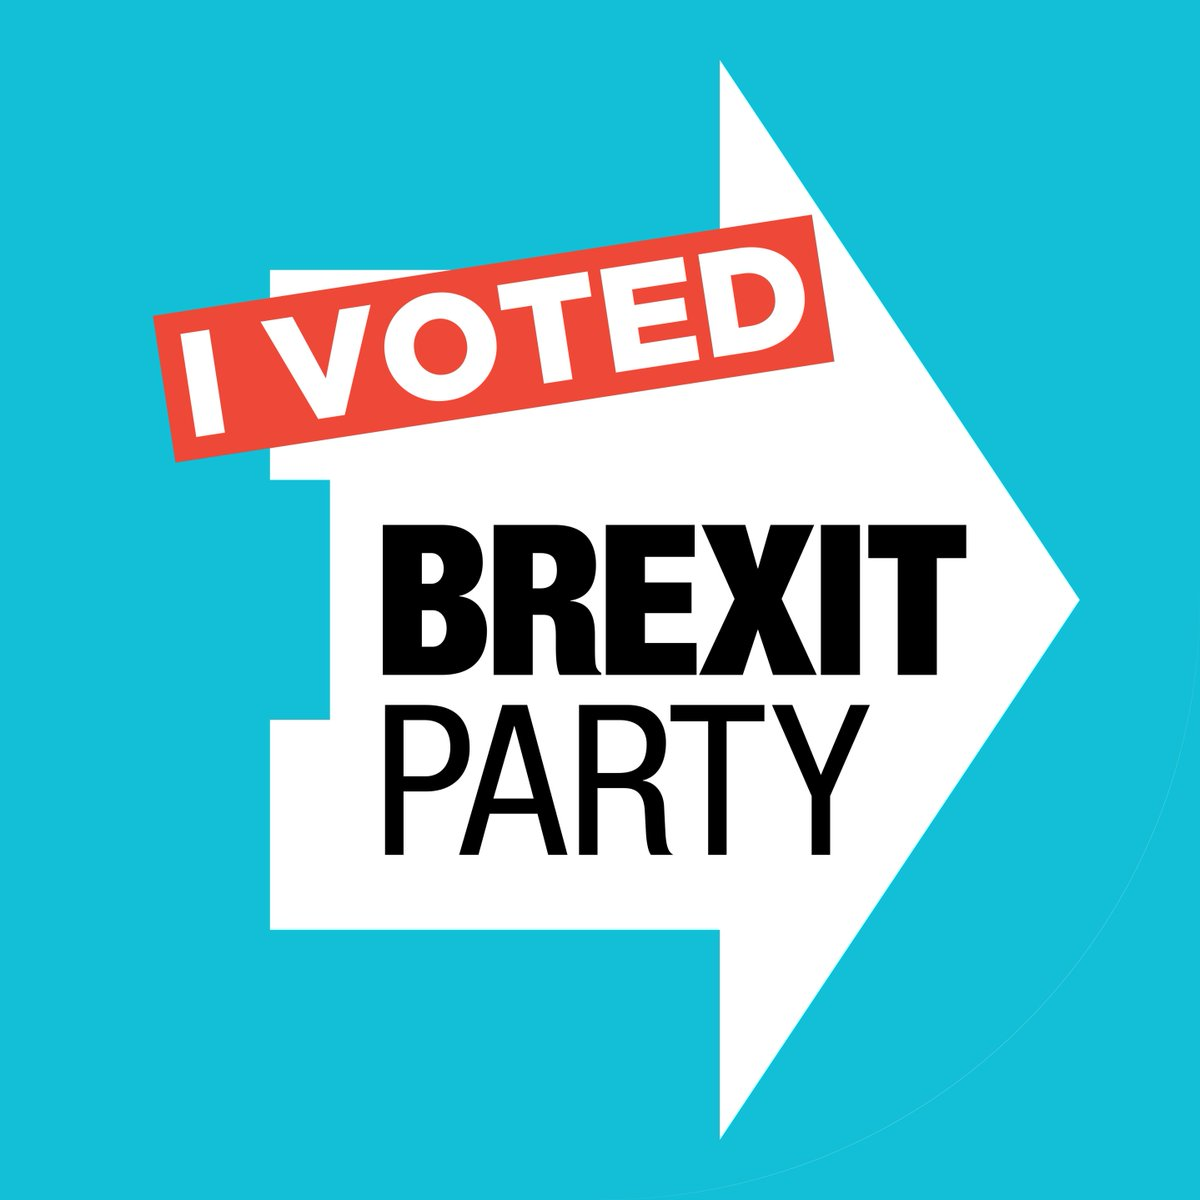 Change your social media profile pictures and avatars to show your support this Thursday. Lets turn social media into a sea of Brexit Blue! #IVotedBrexit